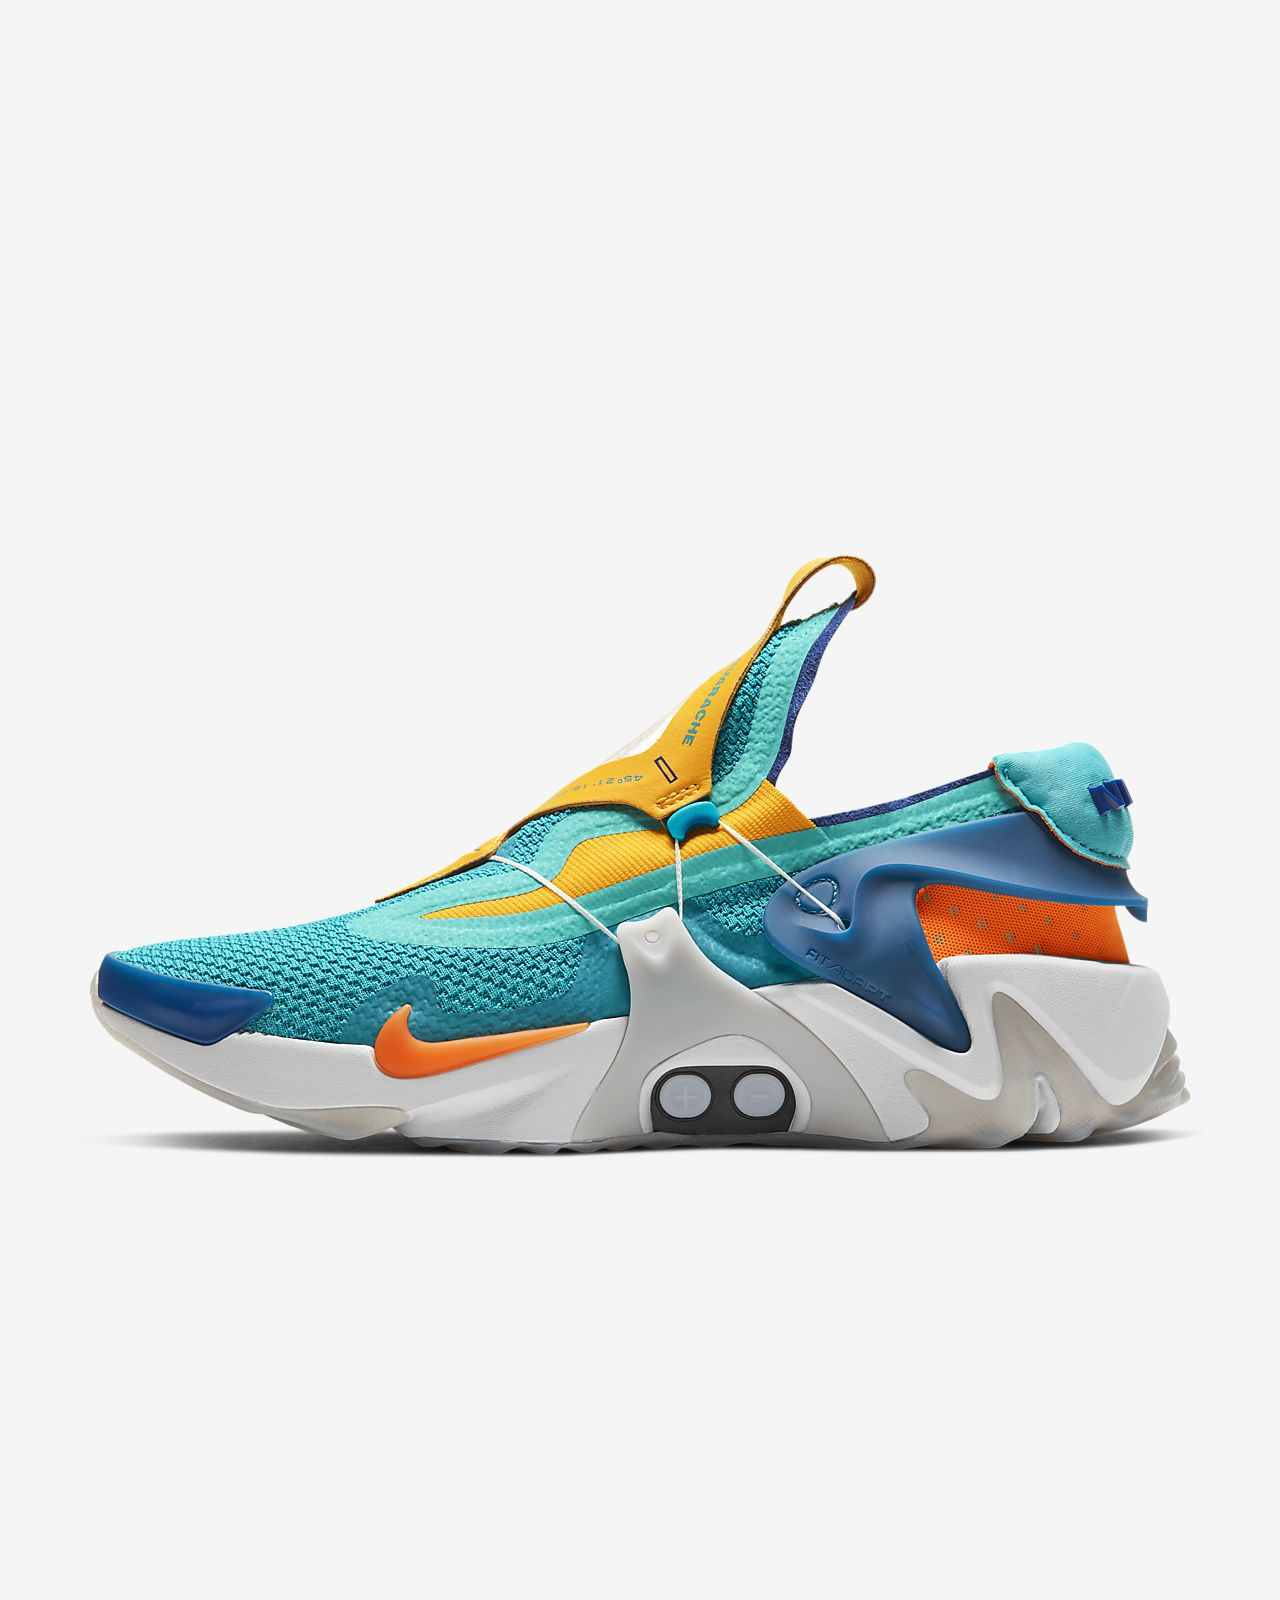 Chaussure Nike Adapt Huarache pour Homme